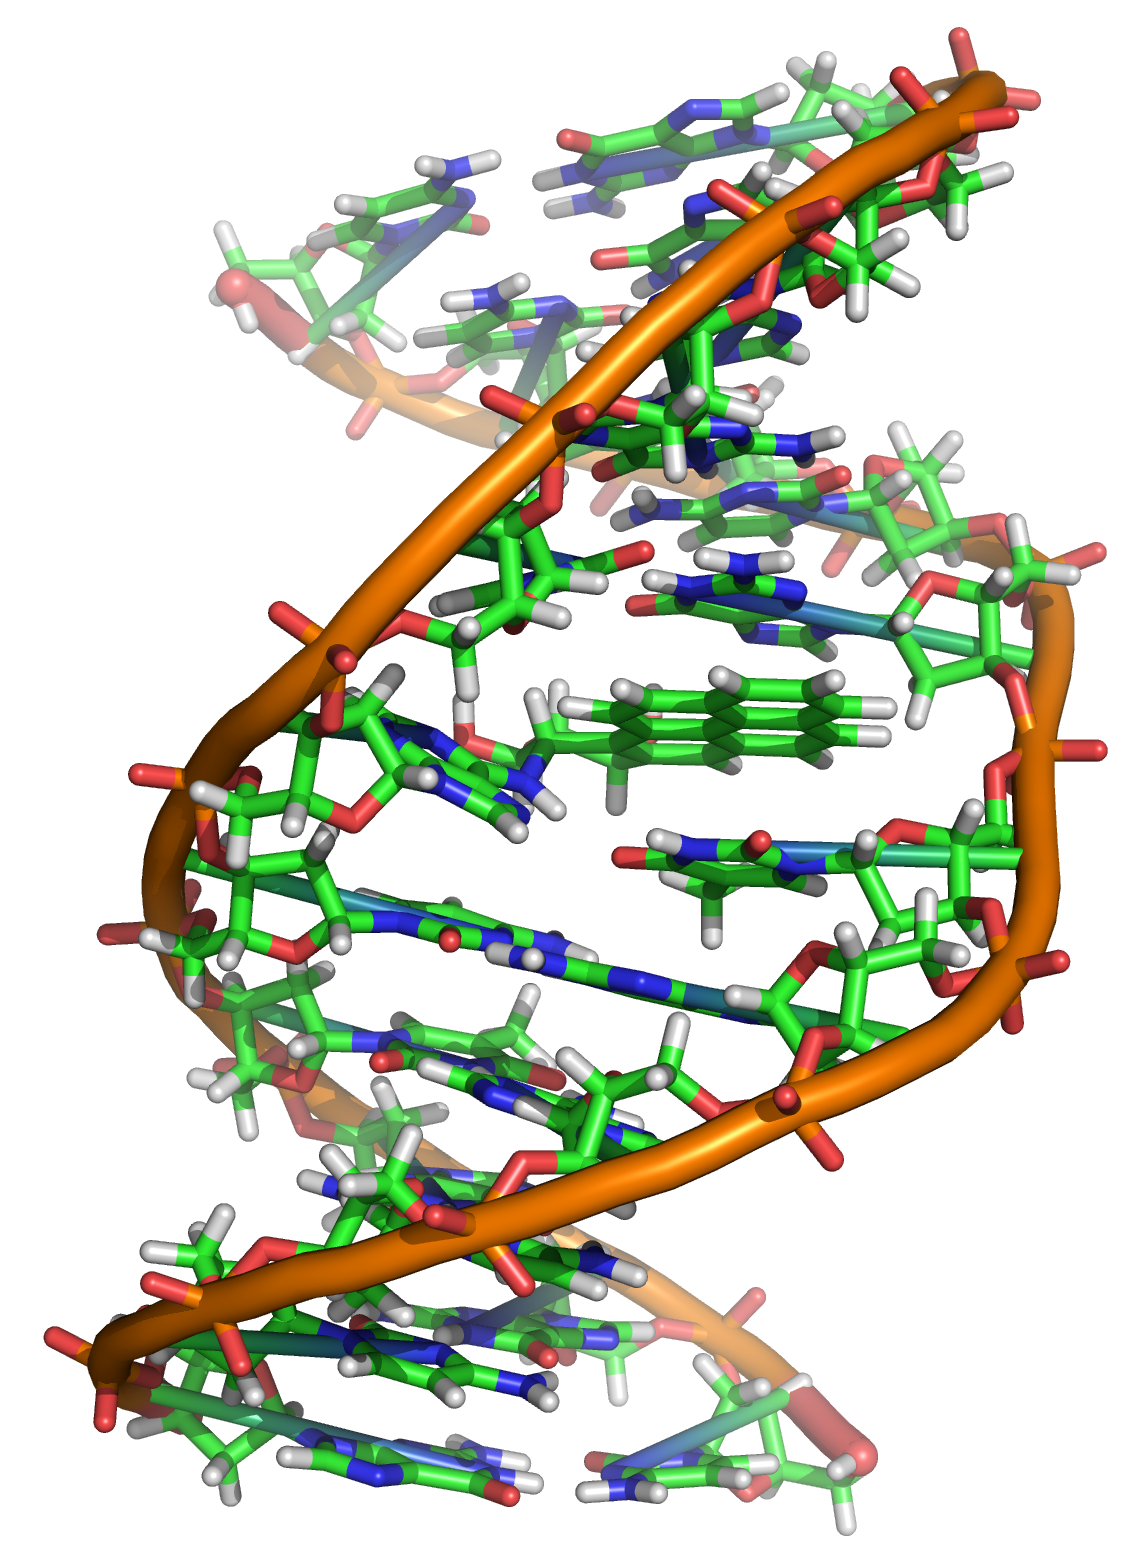 Double helix strand of DNA with backbone that is orange and bases that are green